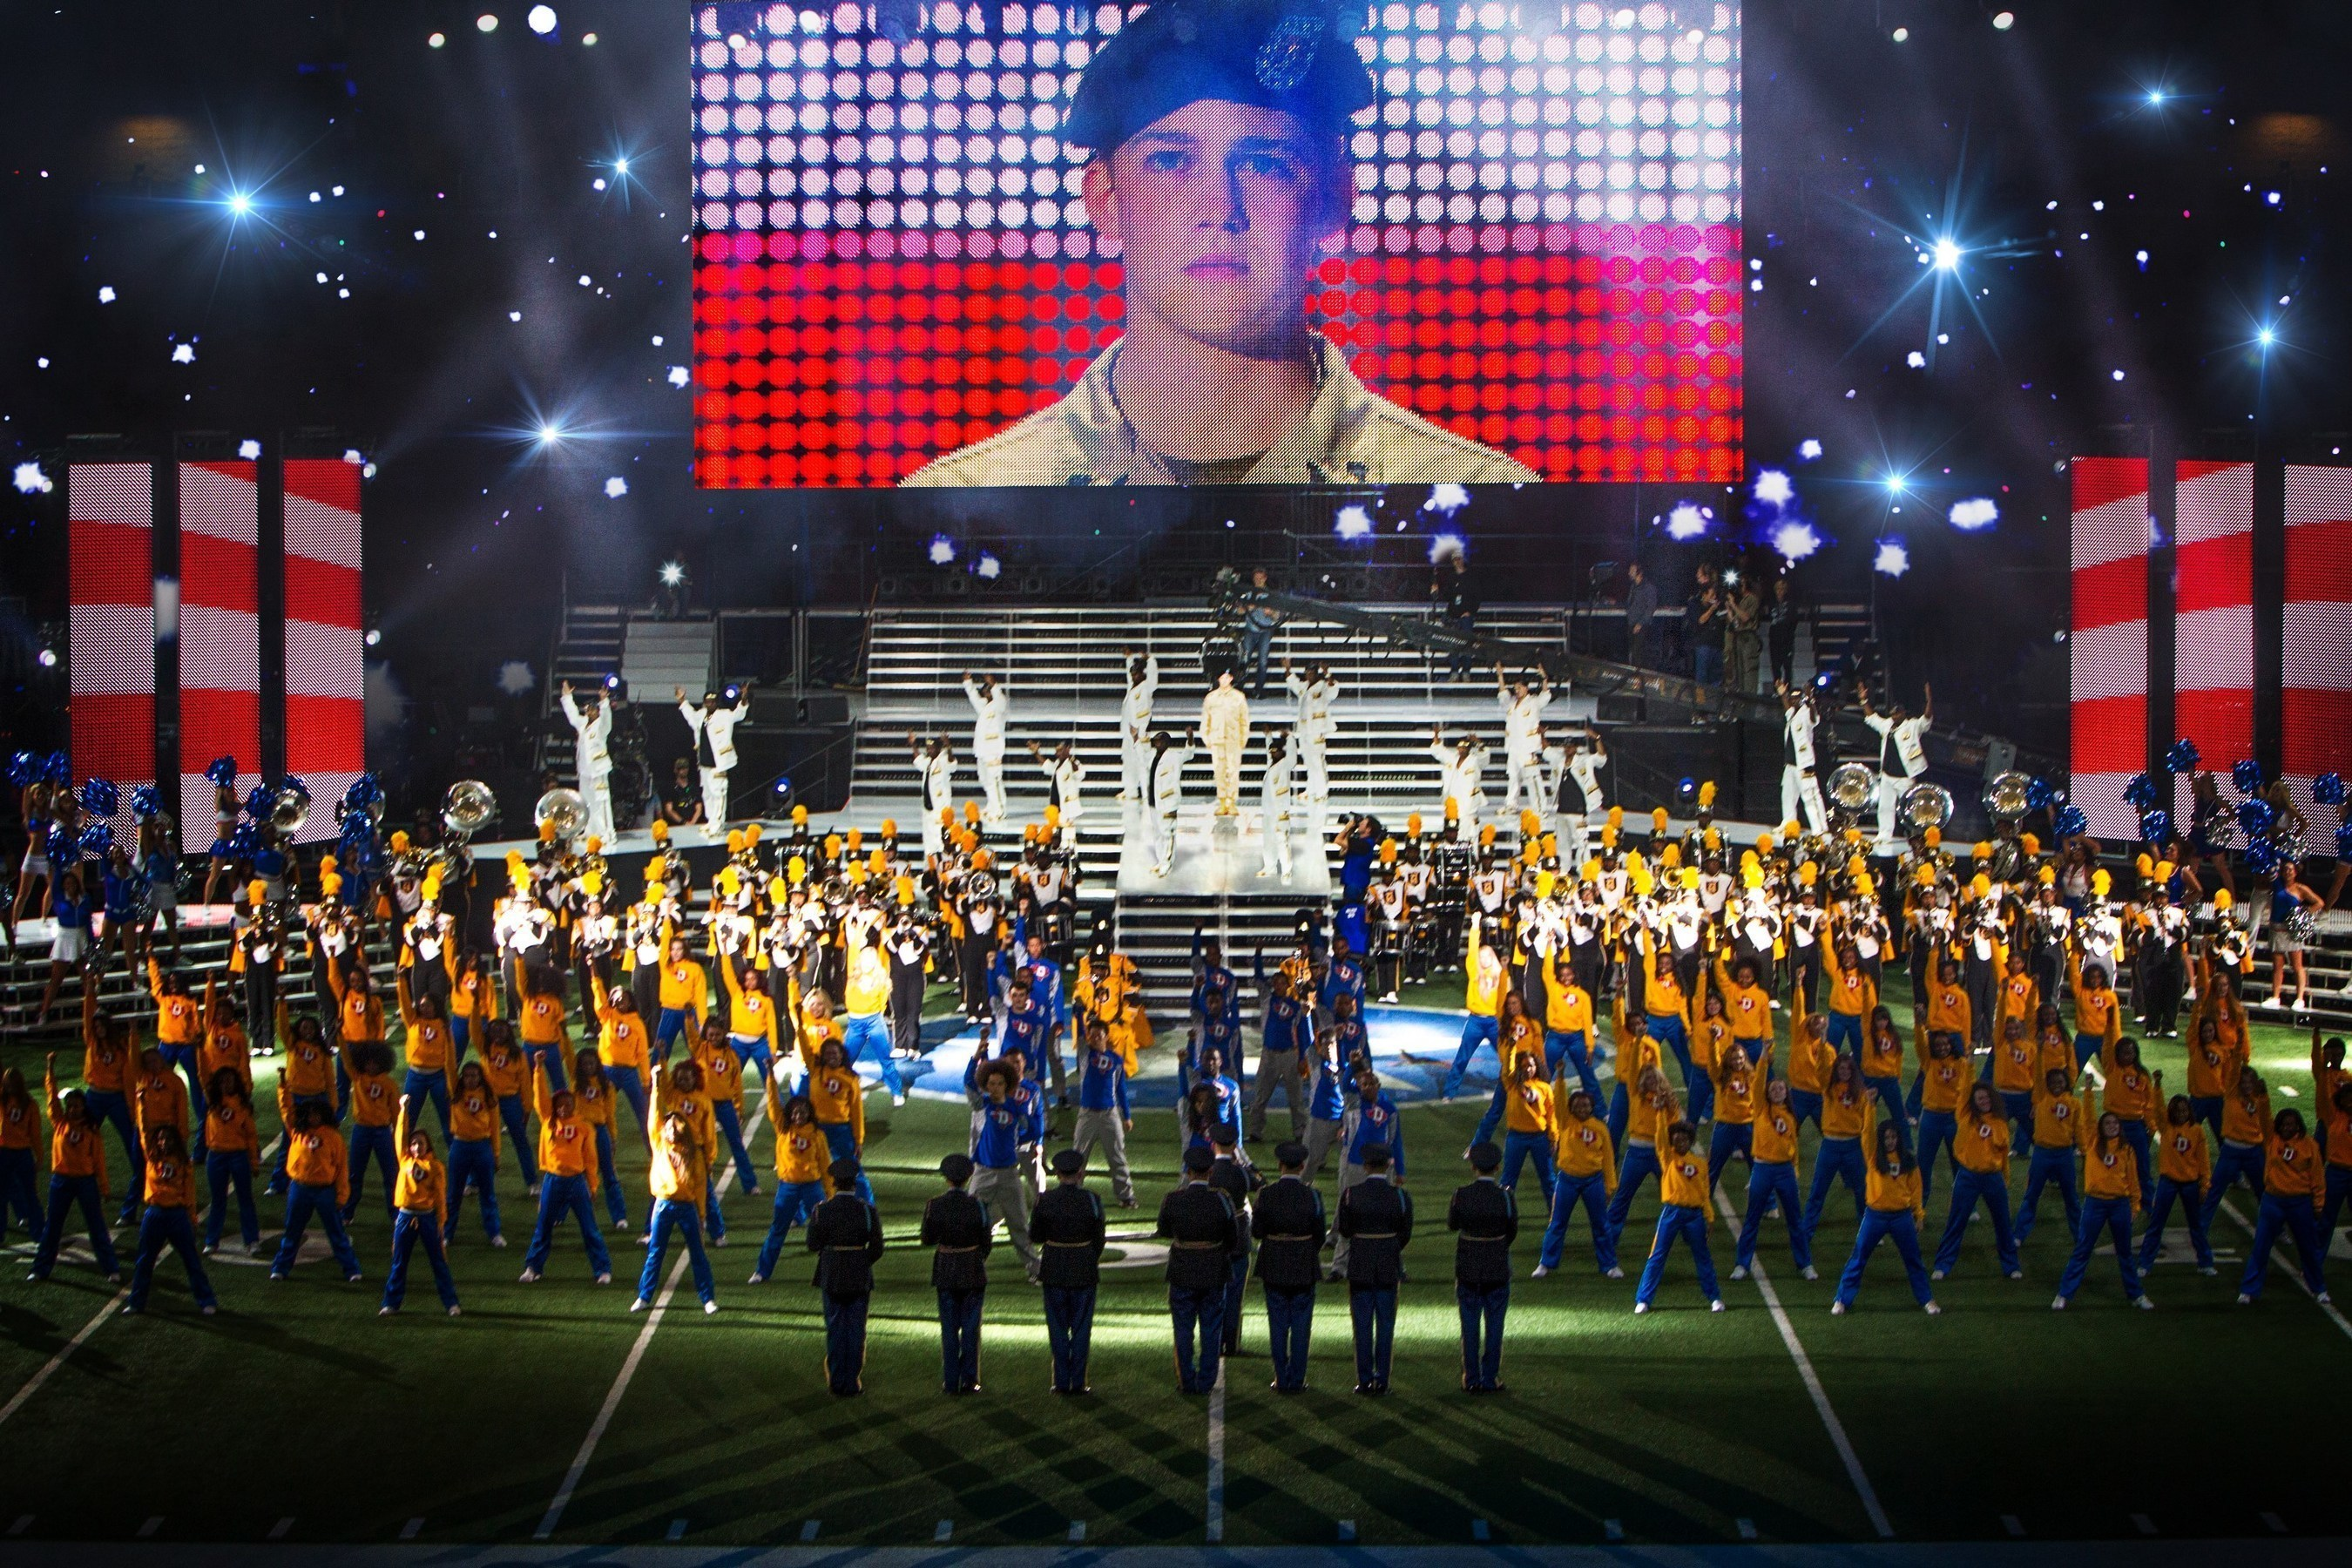 The Film Society of Lincoln Center Announces Special World Premiere Presentation Of Ang Lee's 'Billy Lynn's Long Halftime Walk' At The 54th New York Film Festival